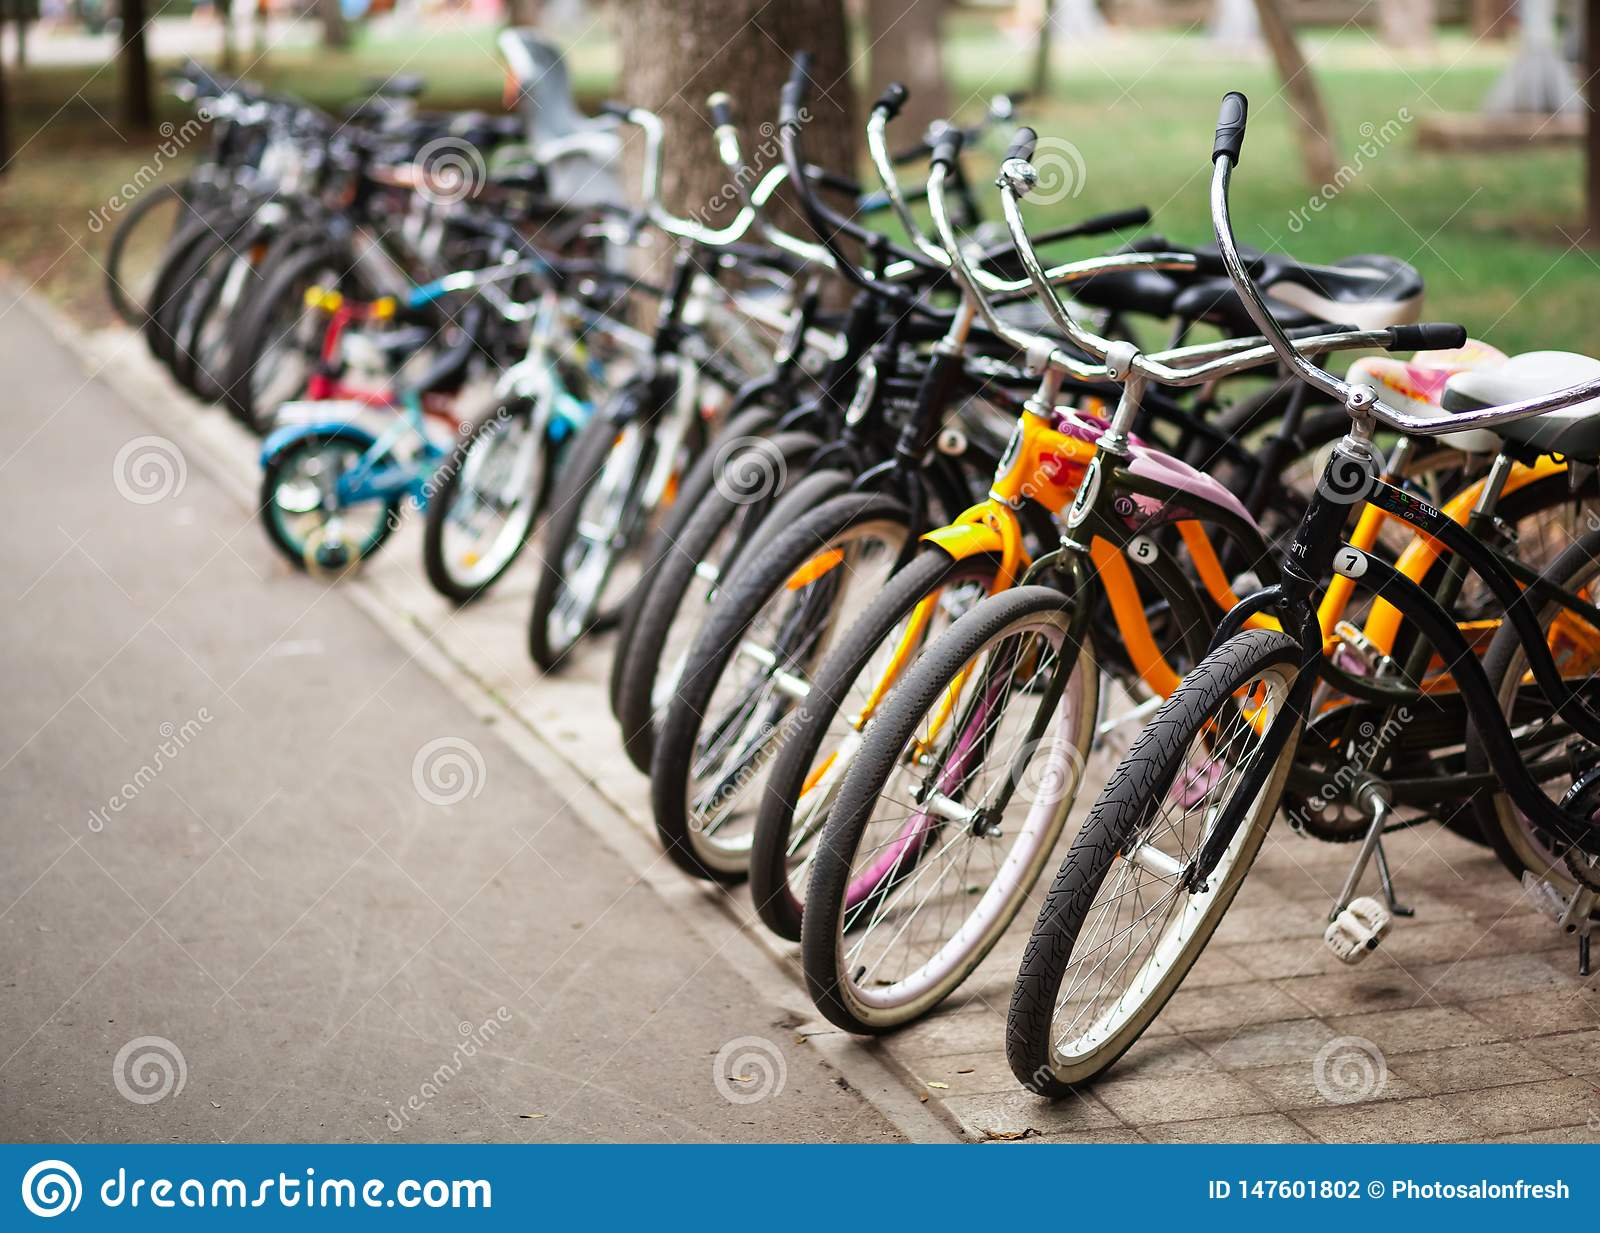 Bicycle parking in a public park